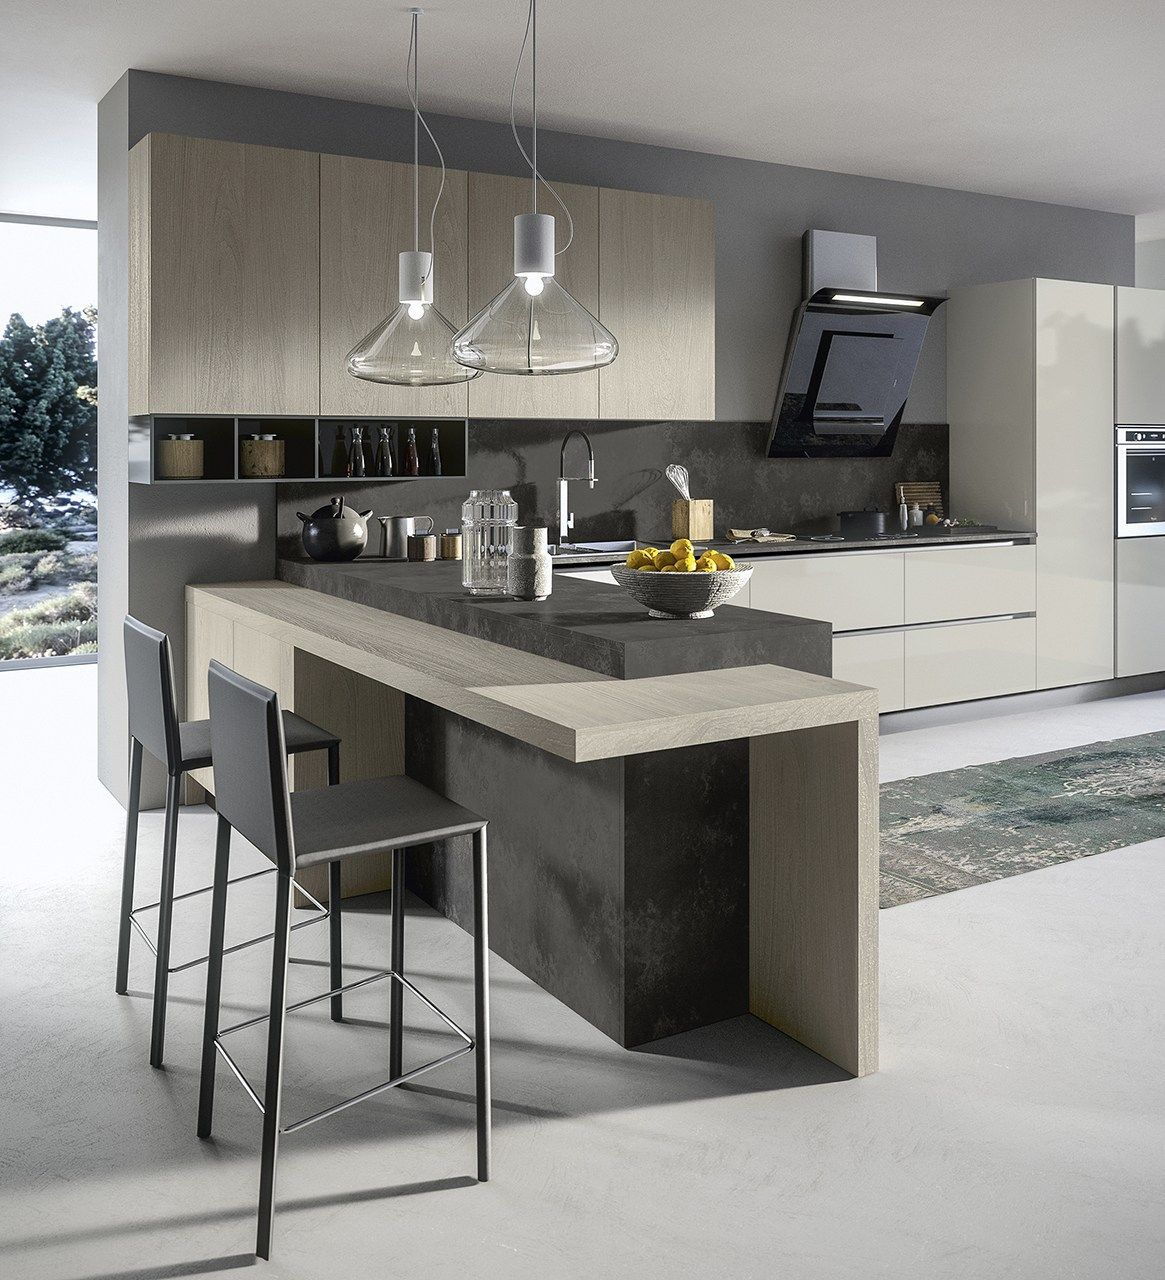 American style fitted kitchen with island with handles